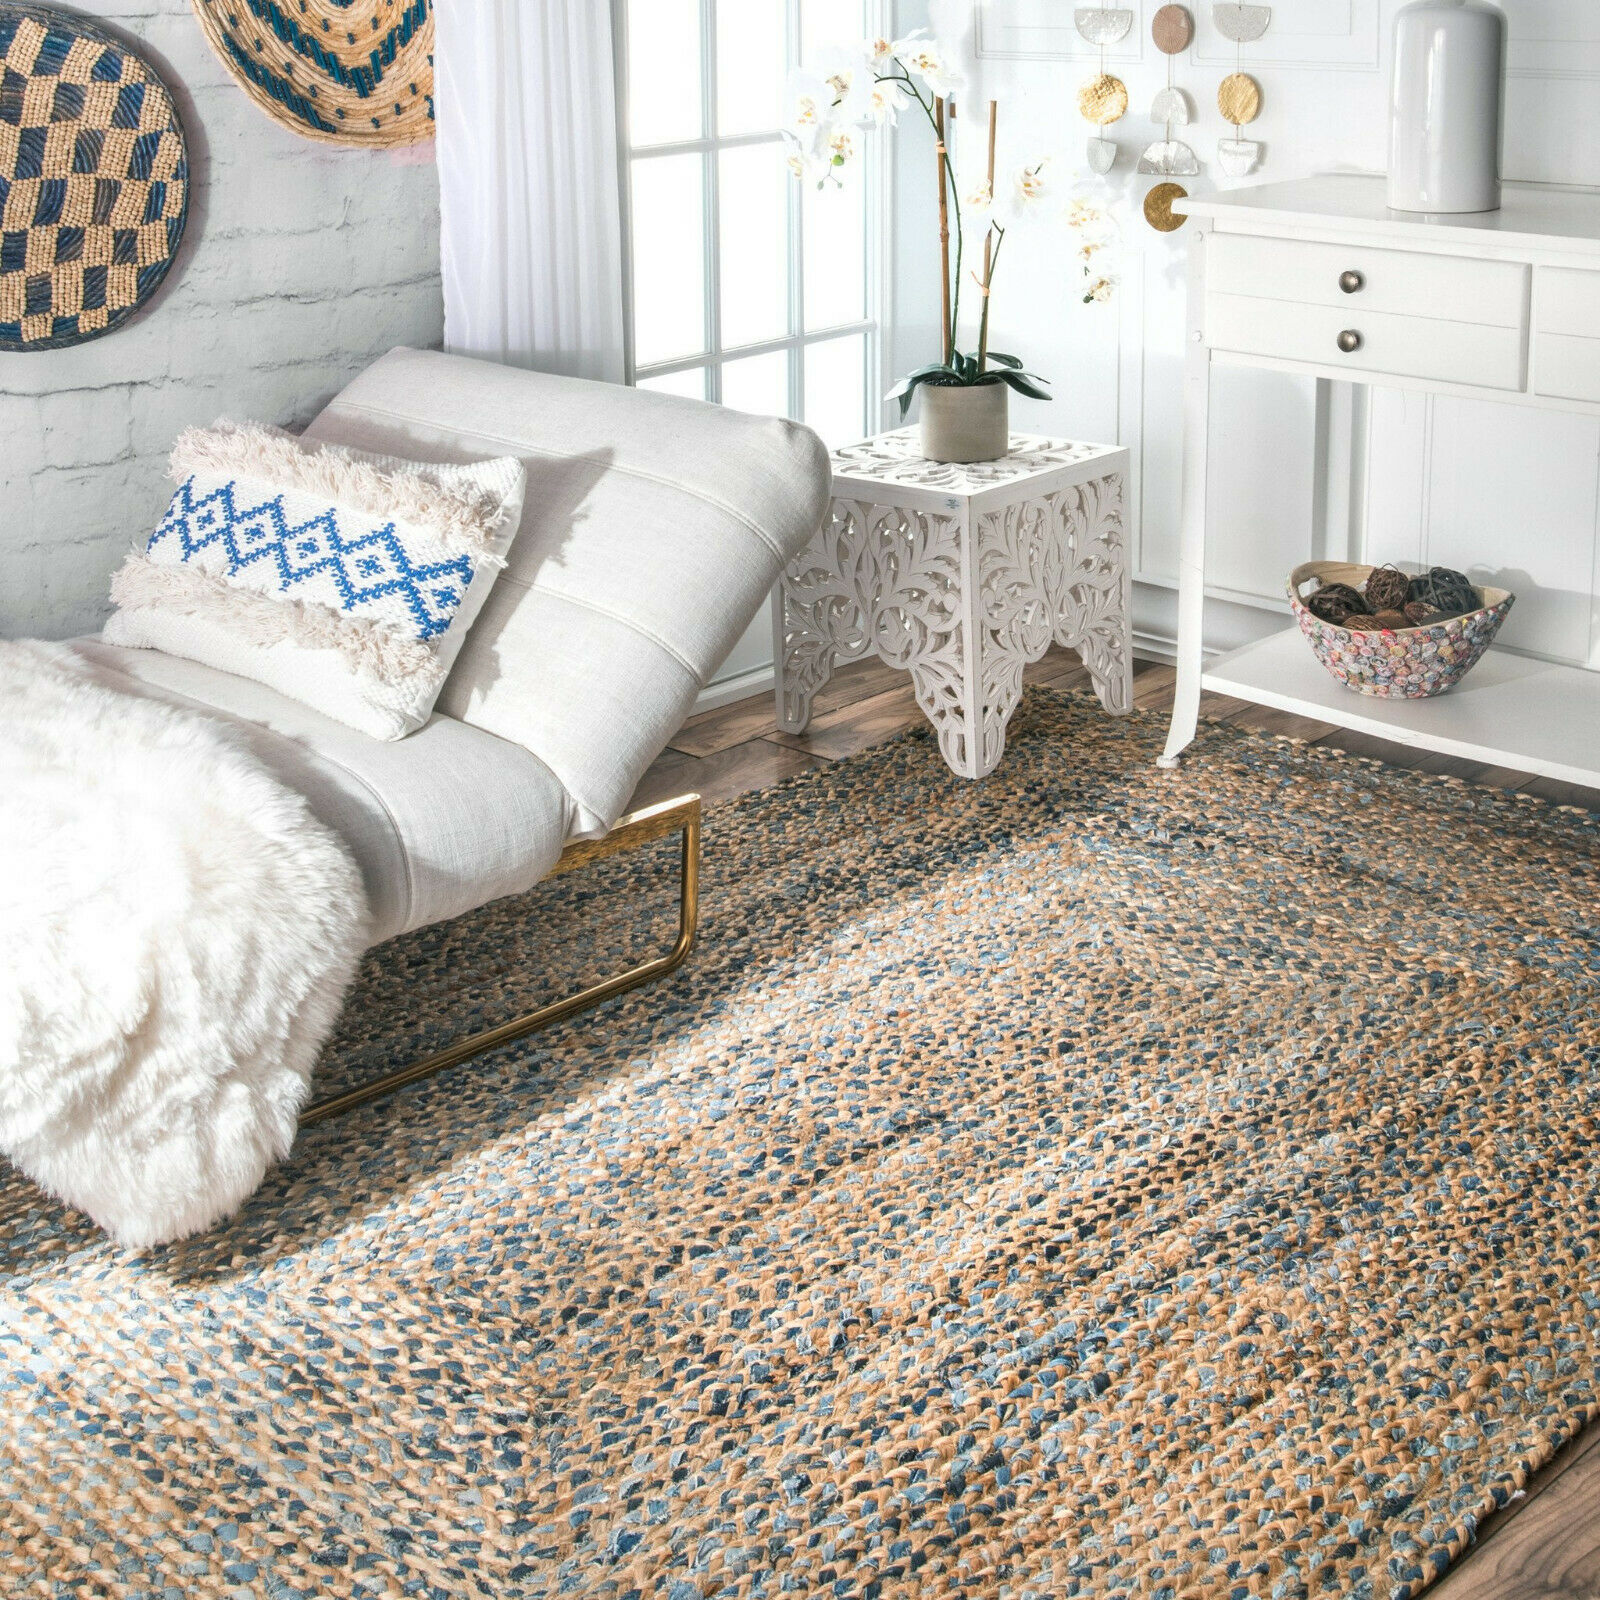 Contemporary Rug Hand Braided Indoor Outdoor Rug Natural Fibers Cotton Jute Blue